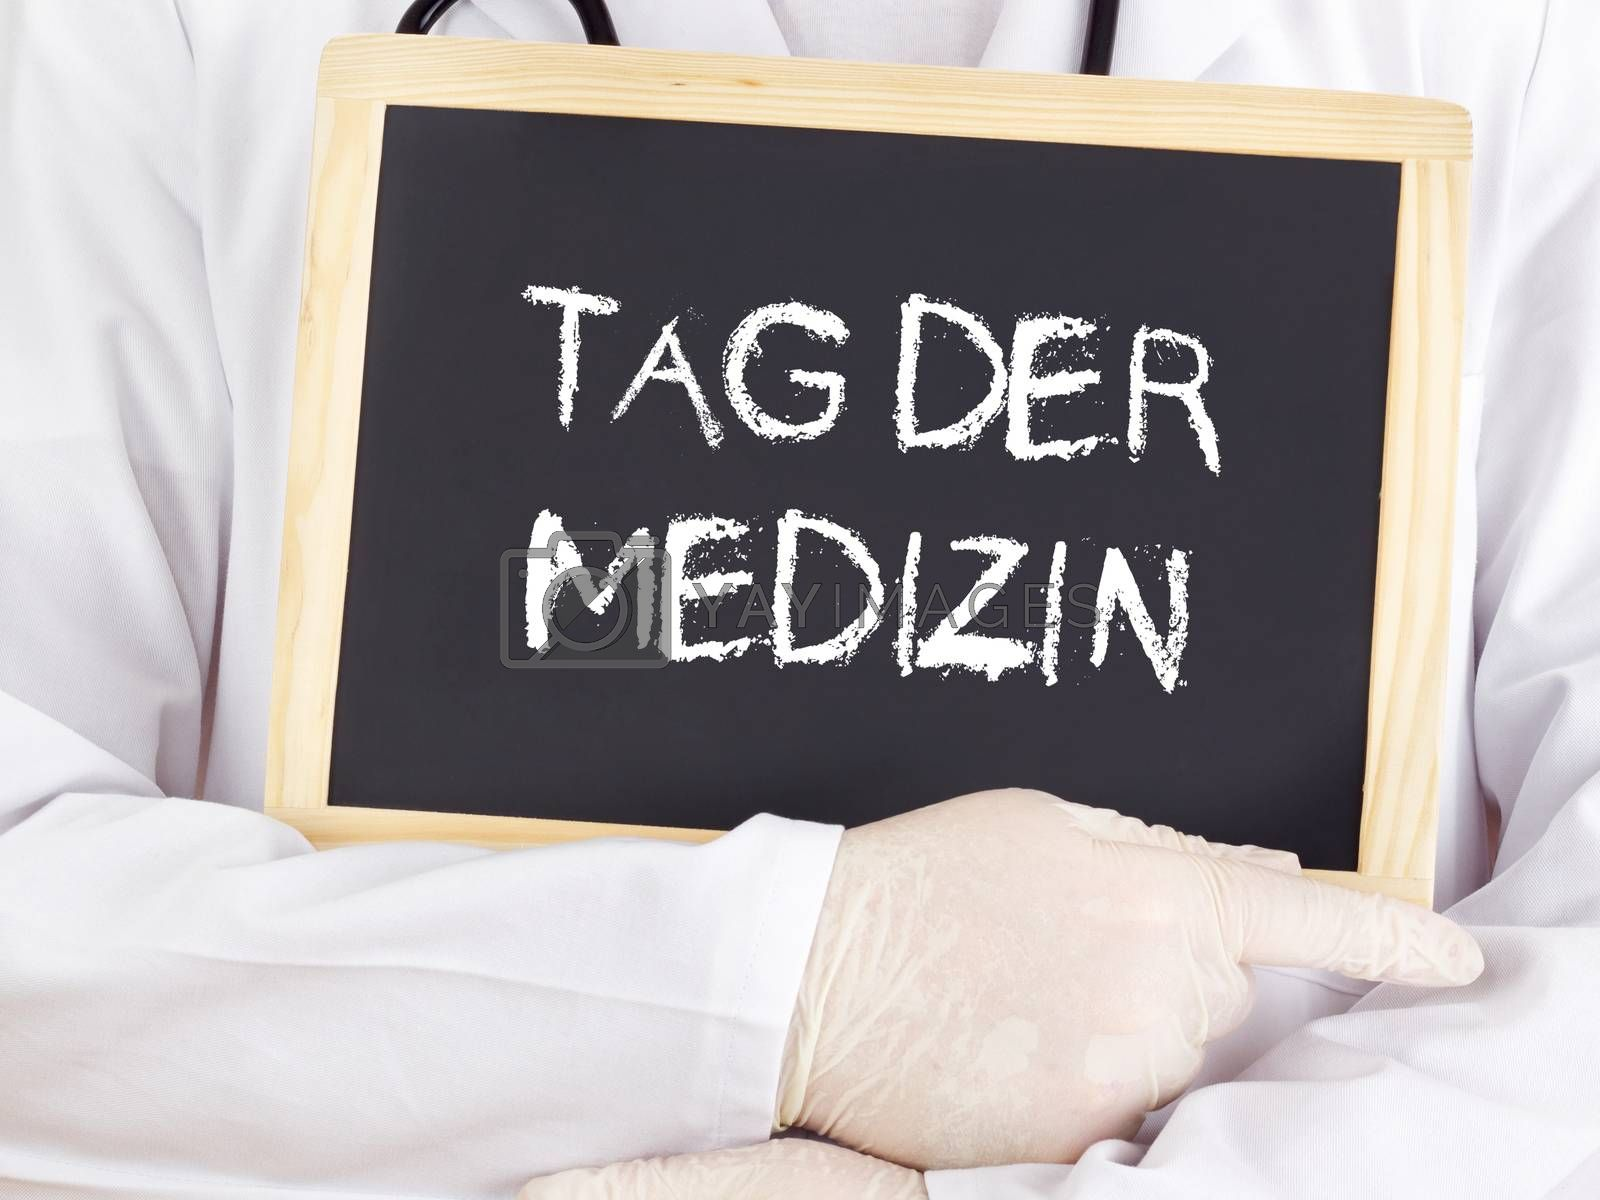 Doctor shows information: Doctors Day in german language